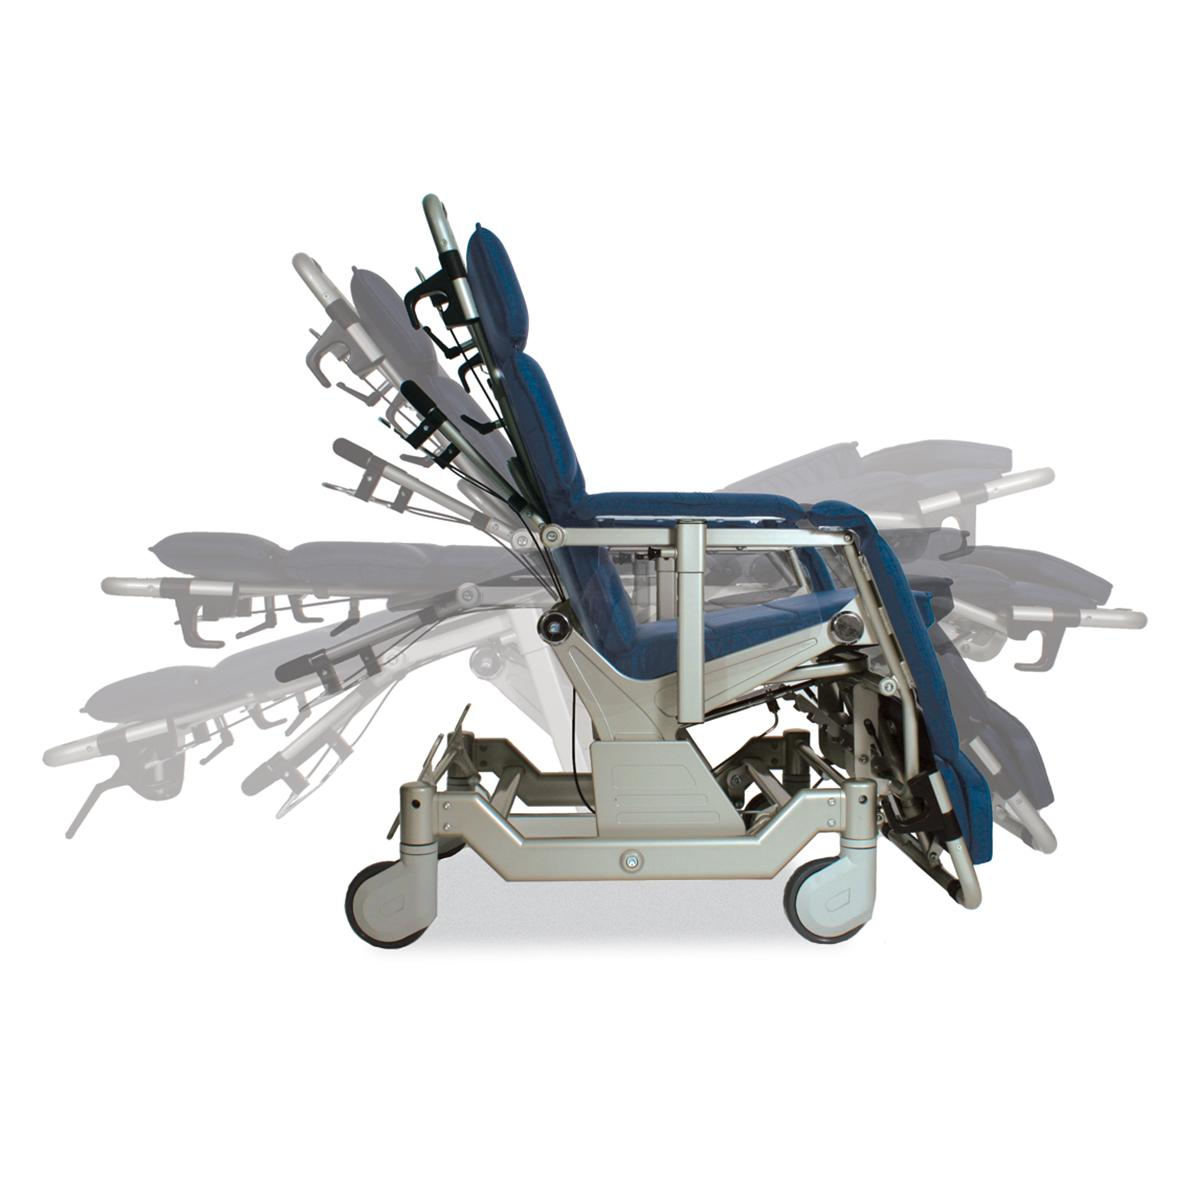 Barton Transfer Chair, blue, side shot, right-facing, demonstrating range of motion